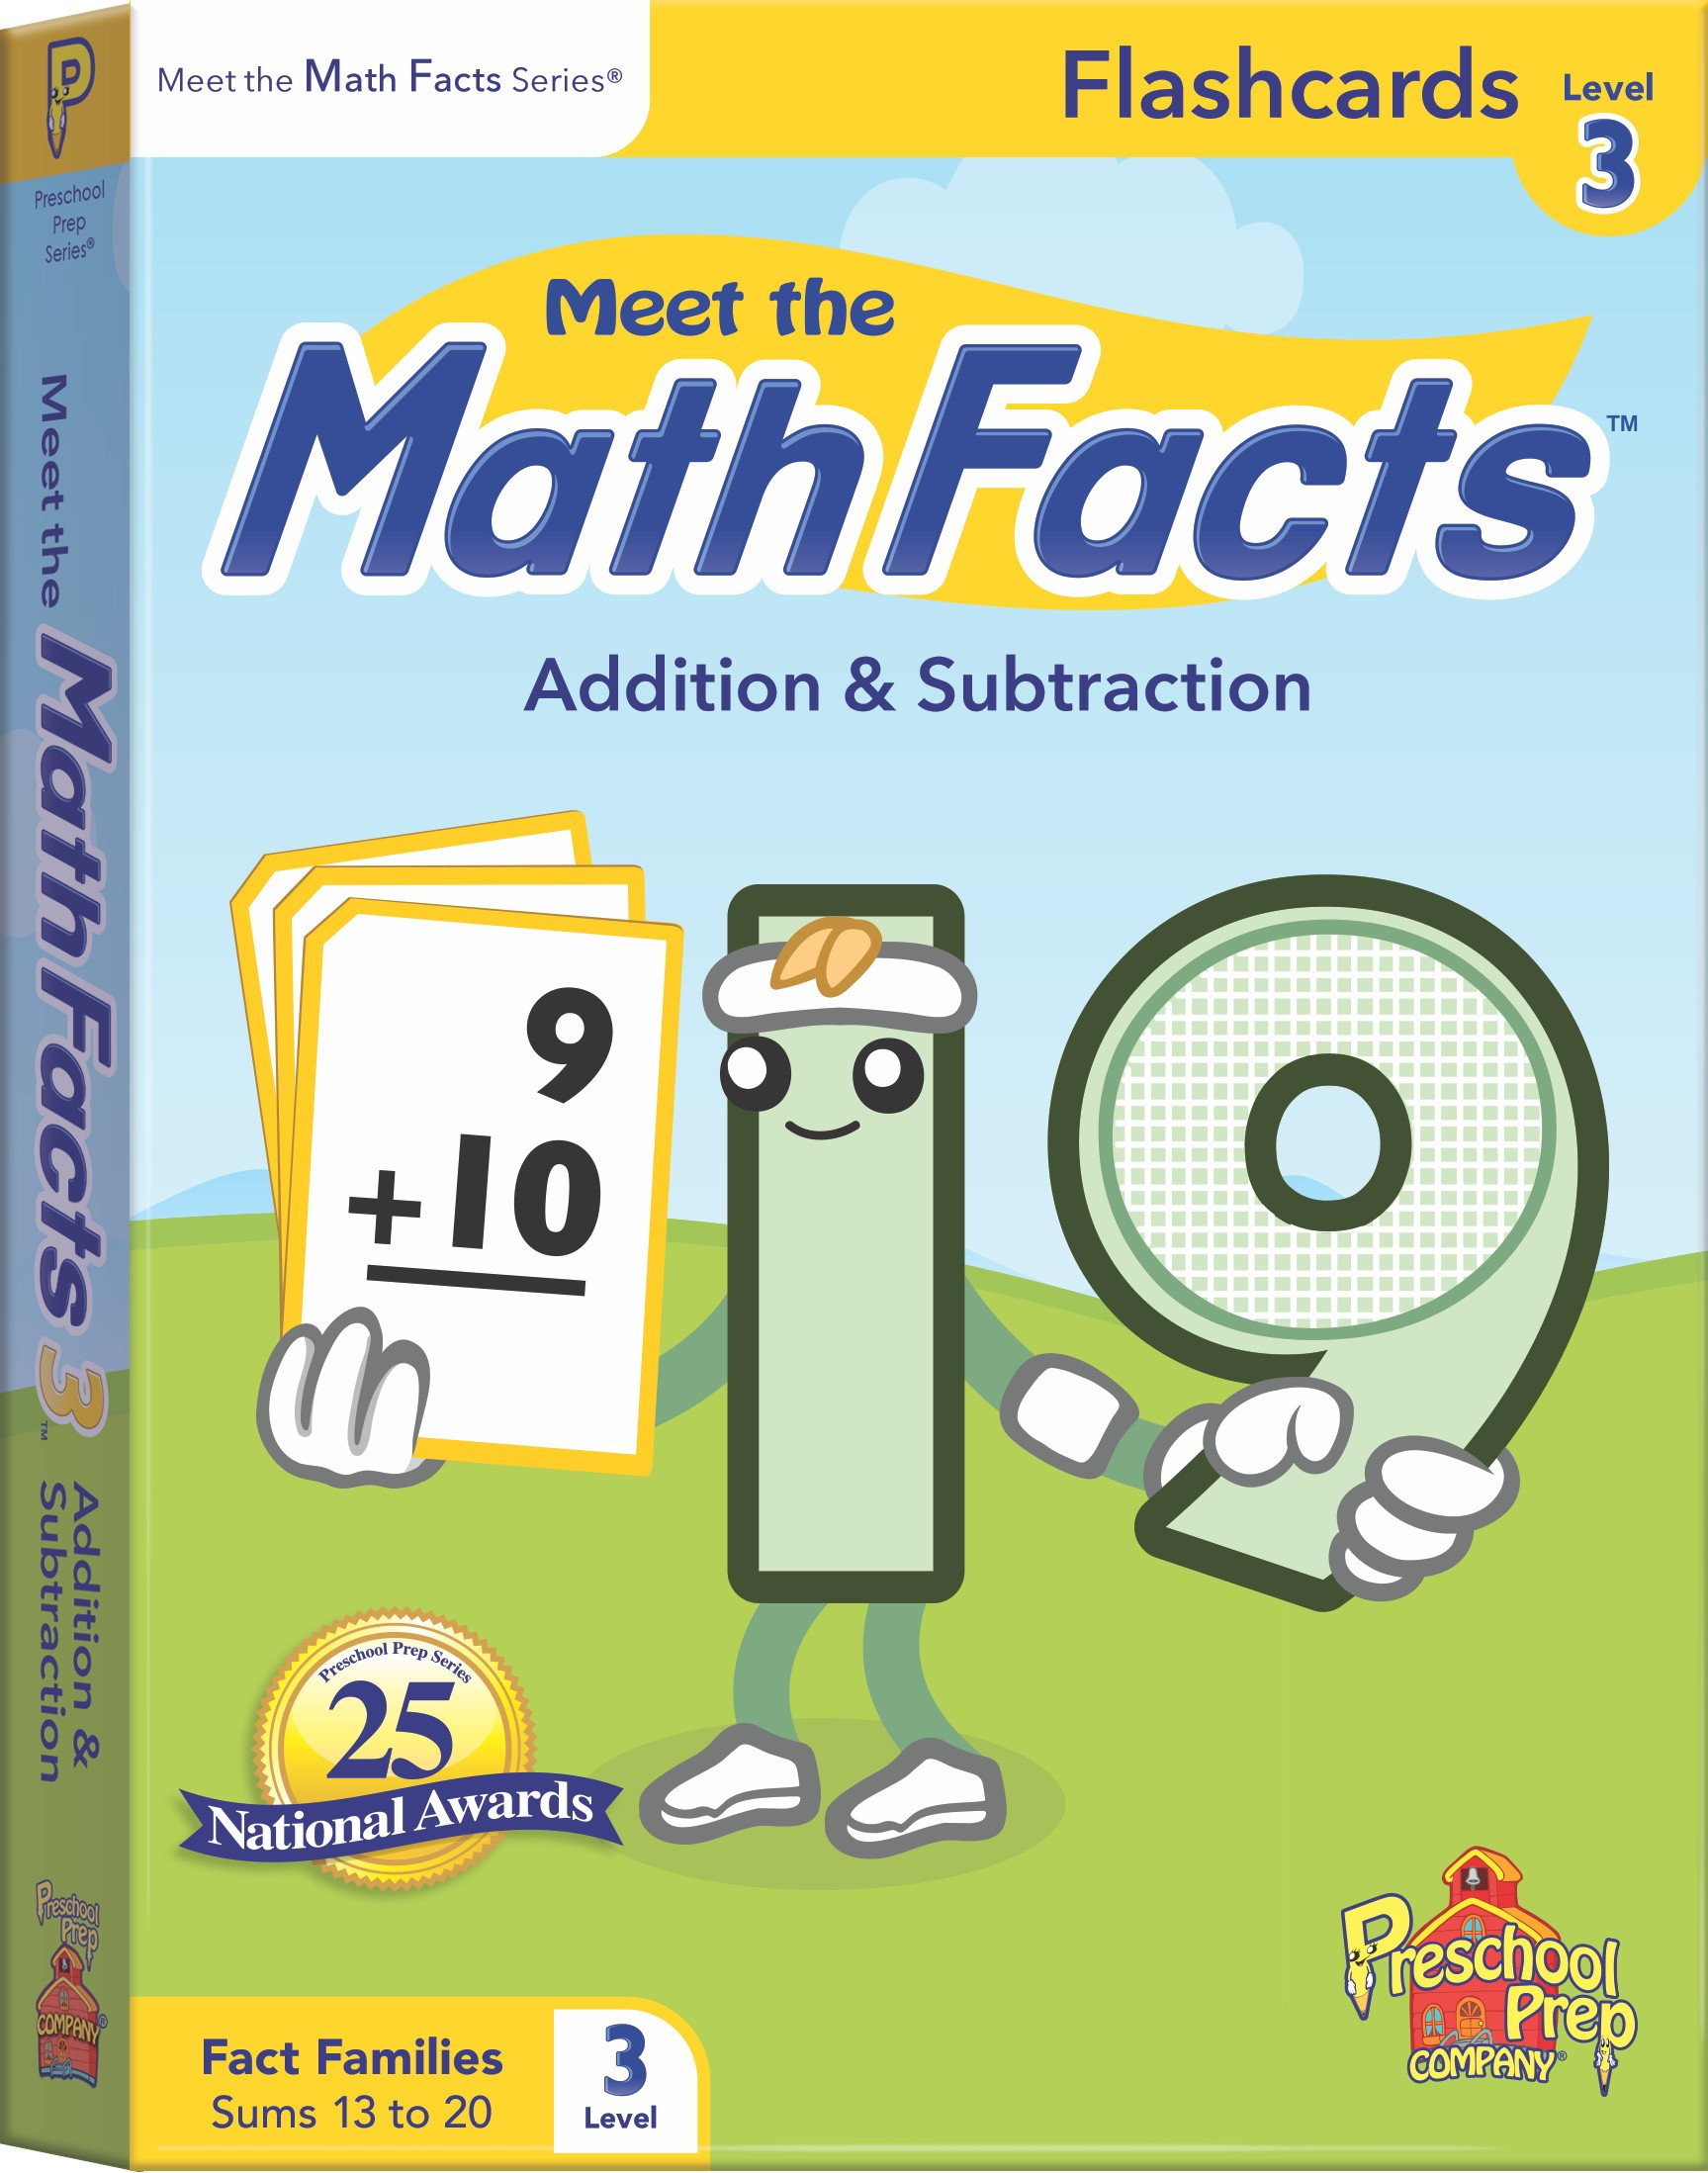 Meet the Math Facts Level 3 - Flashcards: Kathy Oxley: 9781935610519 ...